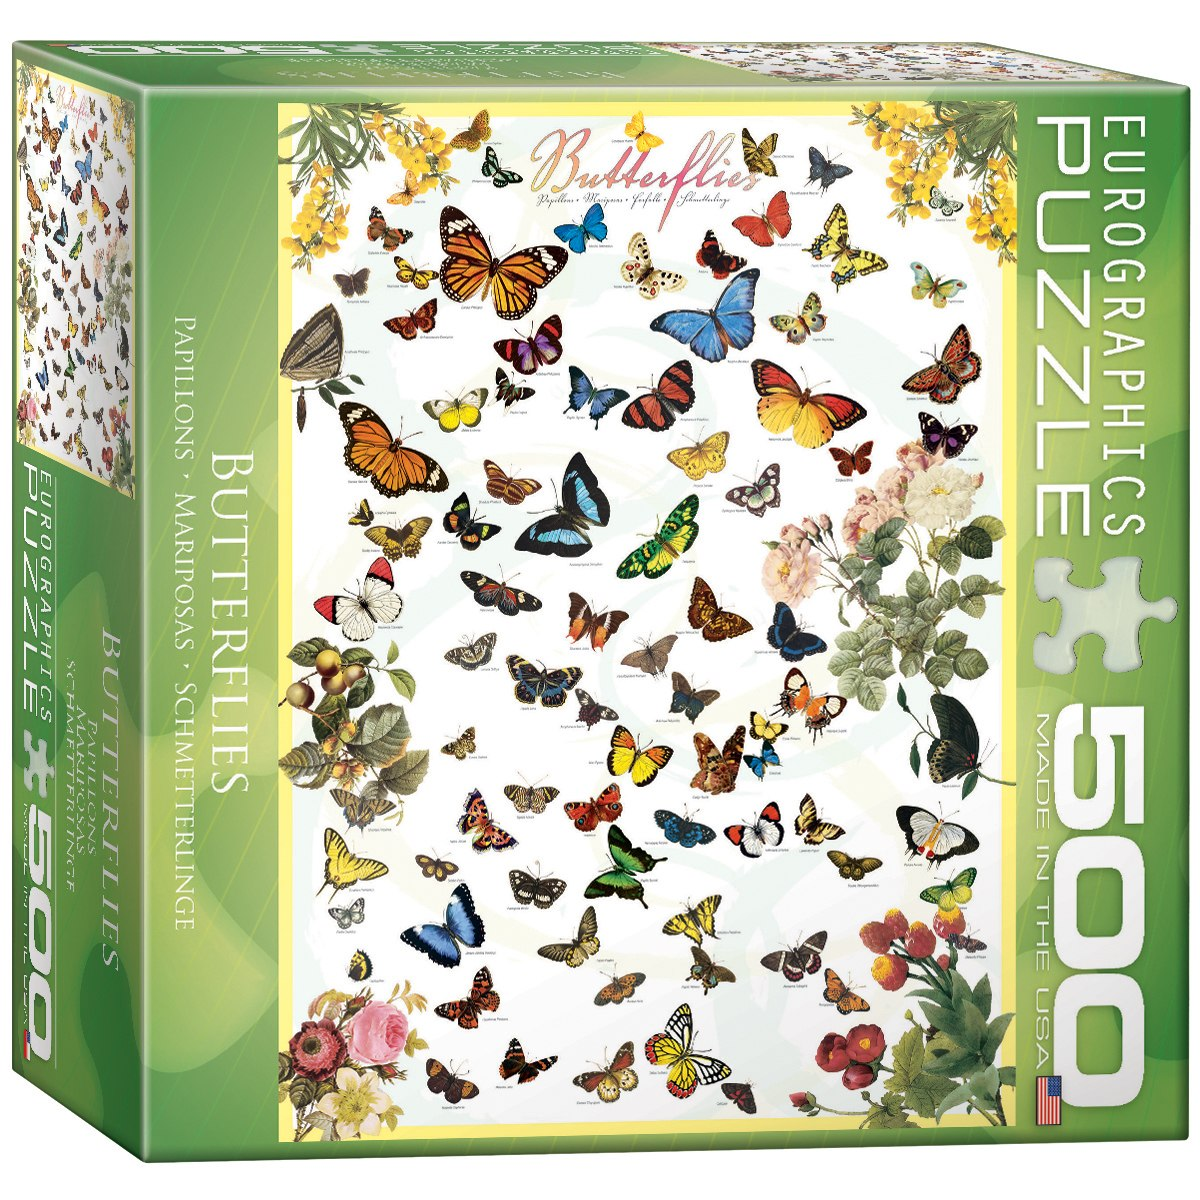 Butterflies (Small Box) - 500pc Jigsaw Puzzle by Eurographics